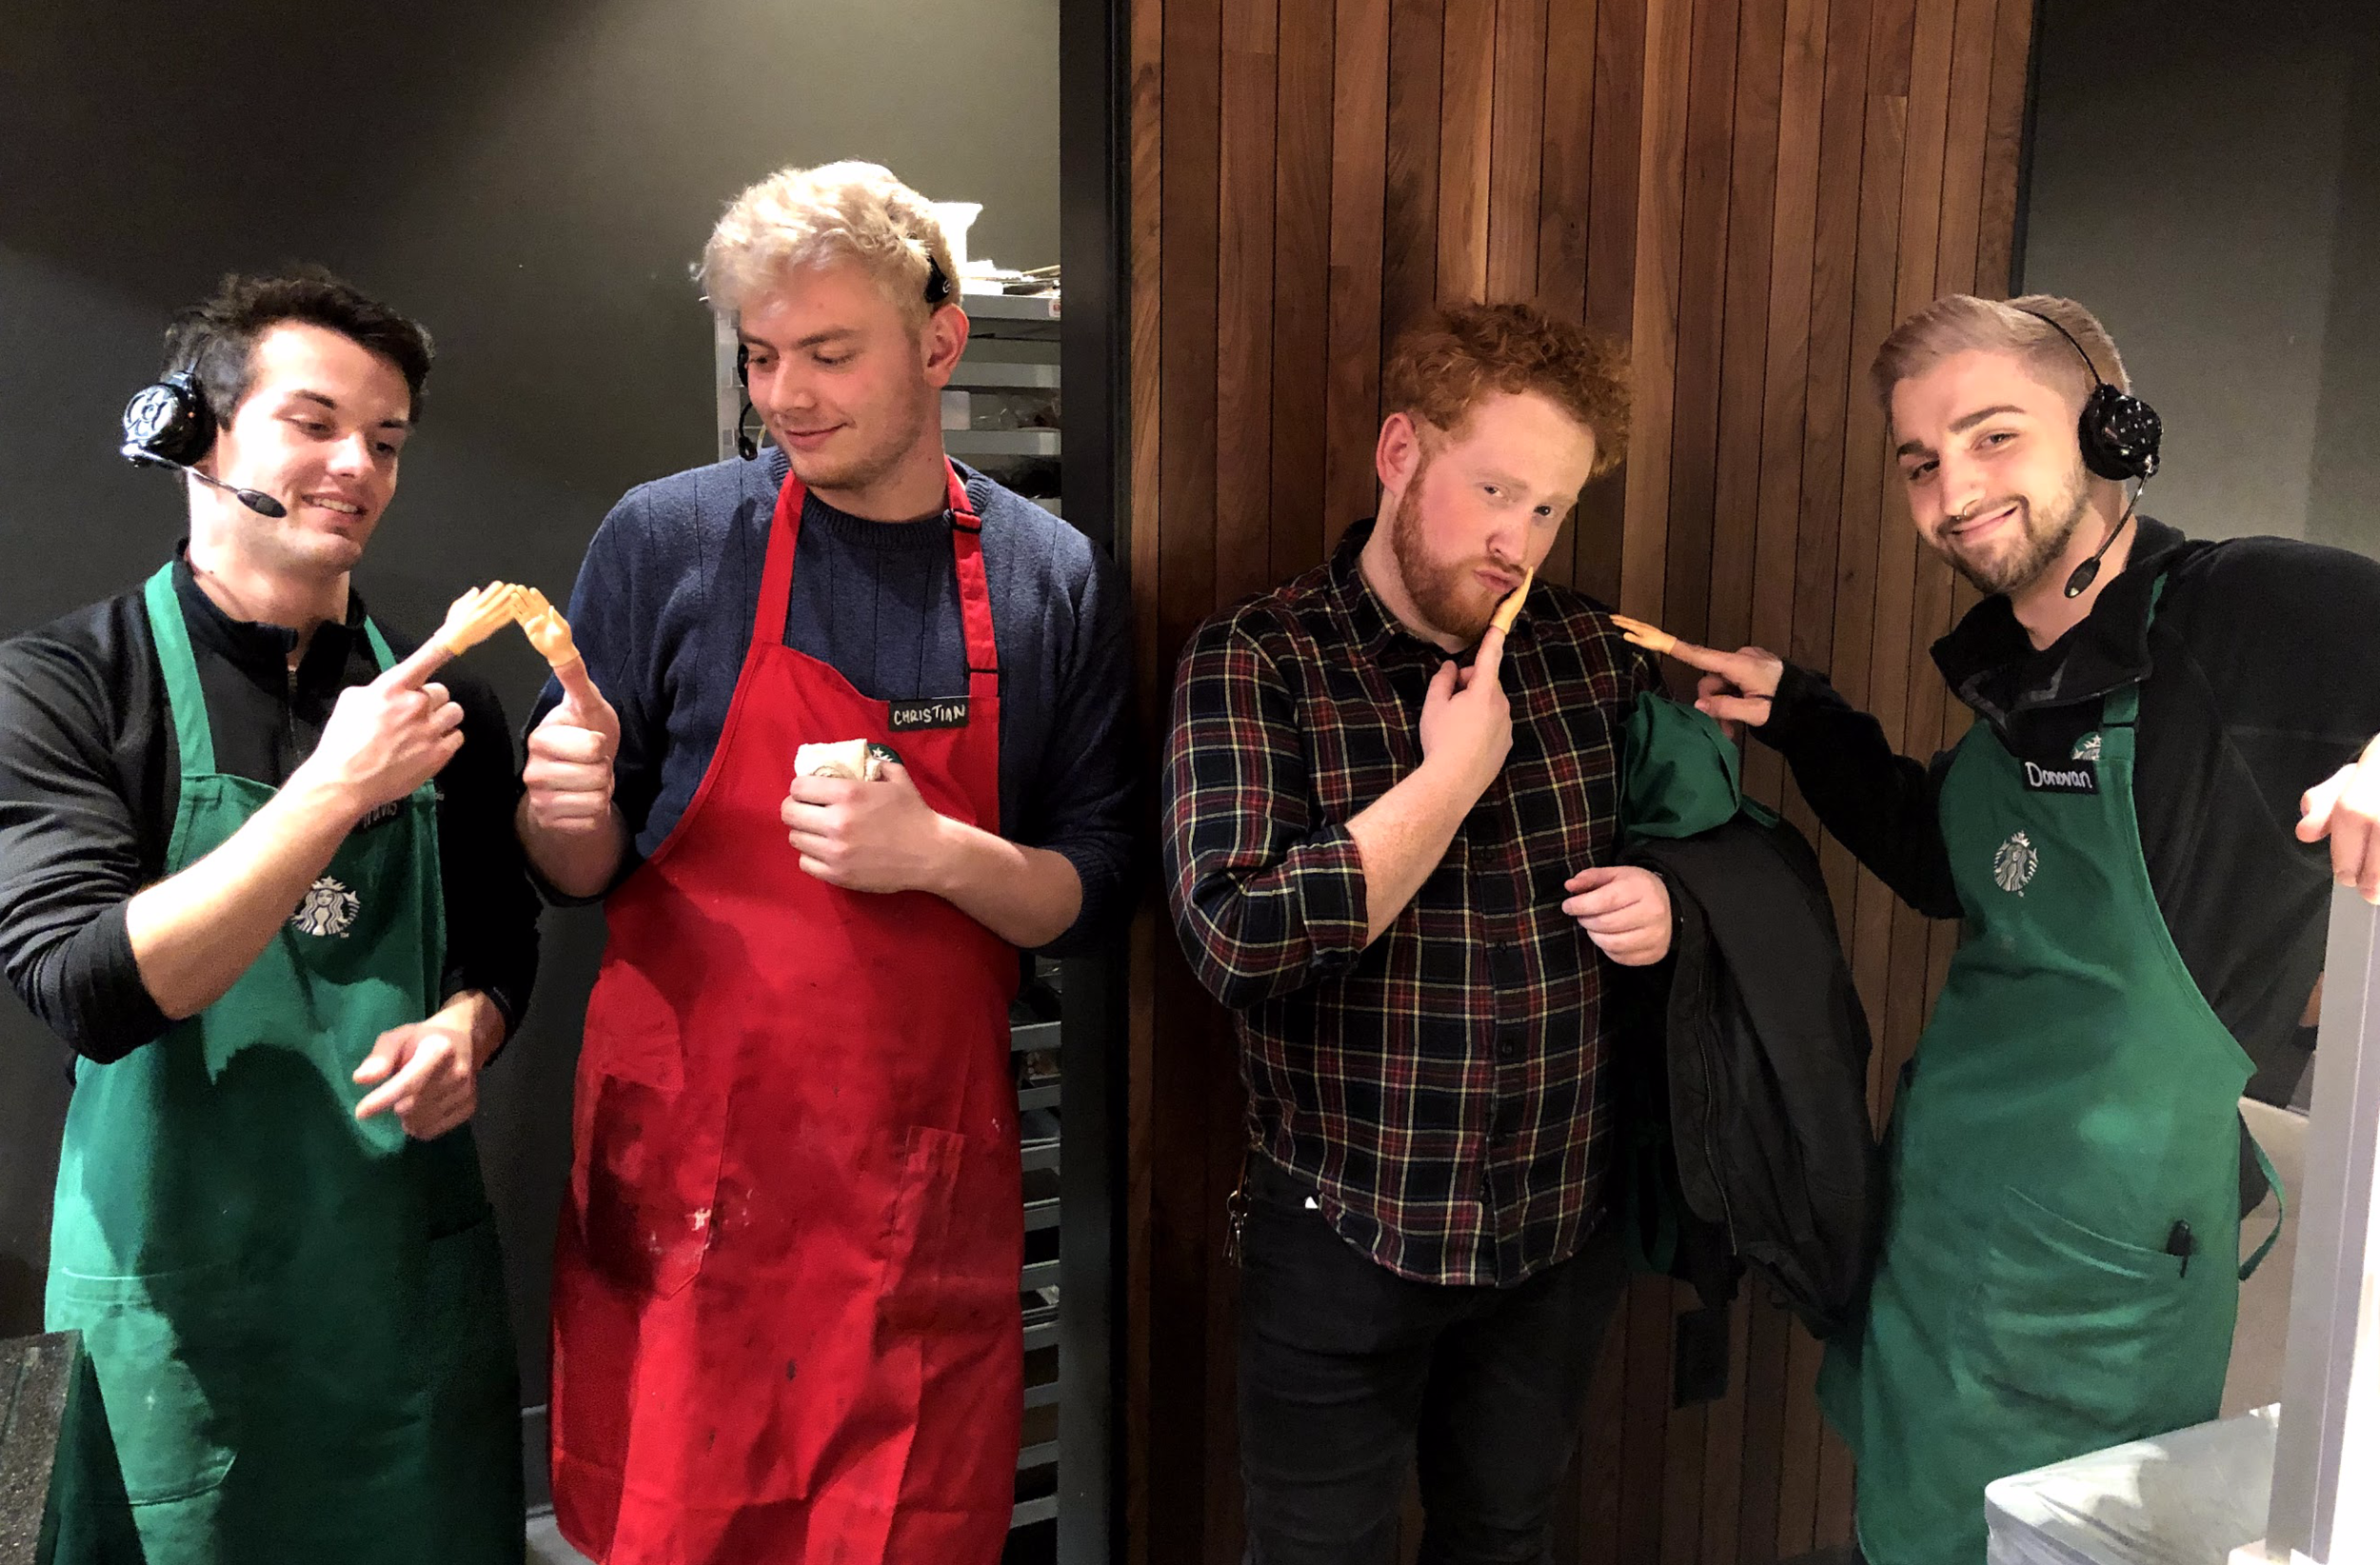 The Portage, Westnedge Ave Starbuck's (Male) baristas. Dec. 2018